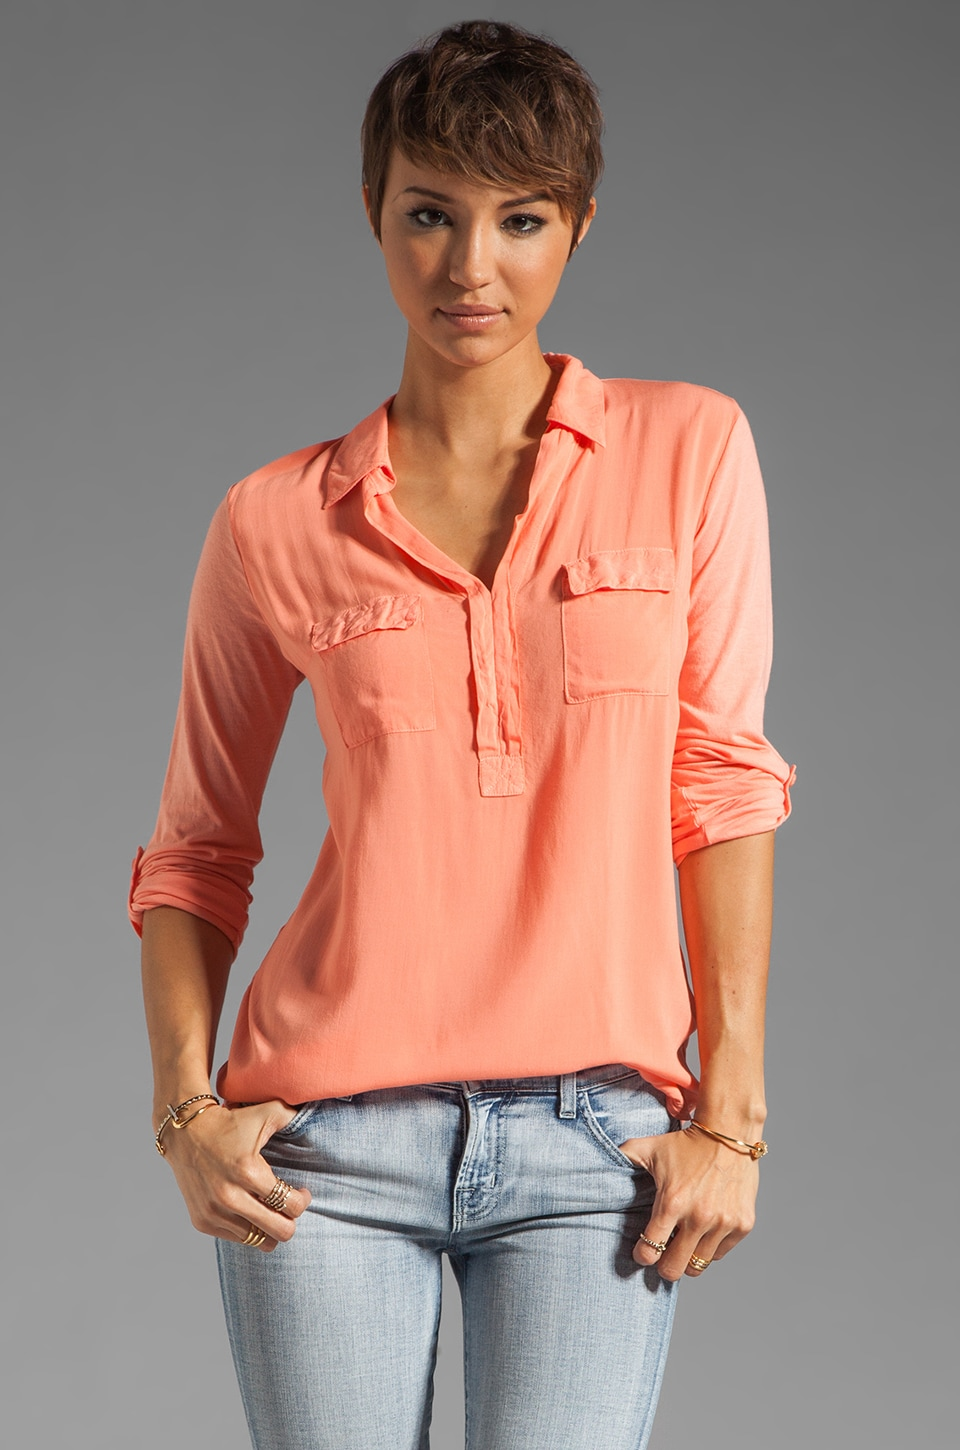 Splendid Shirting Collar Top in Apricot